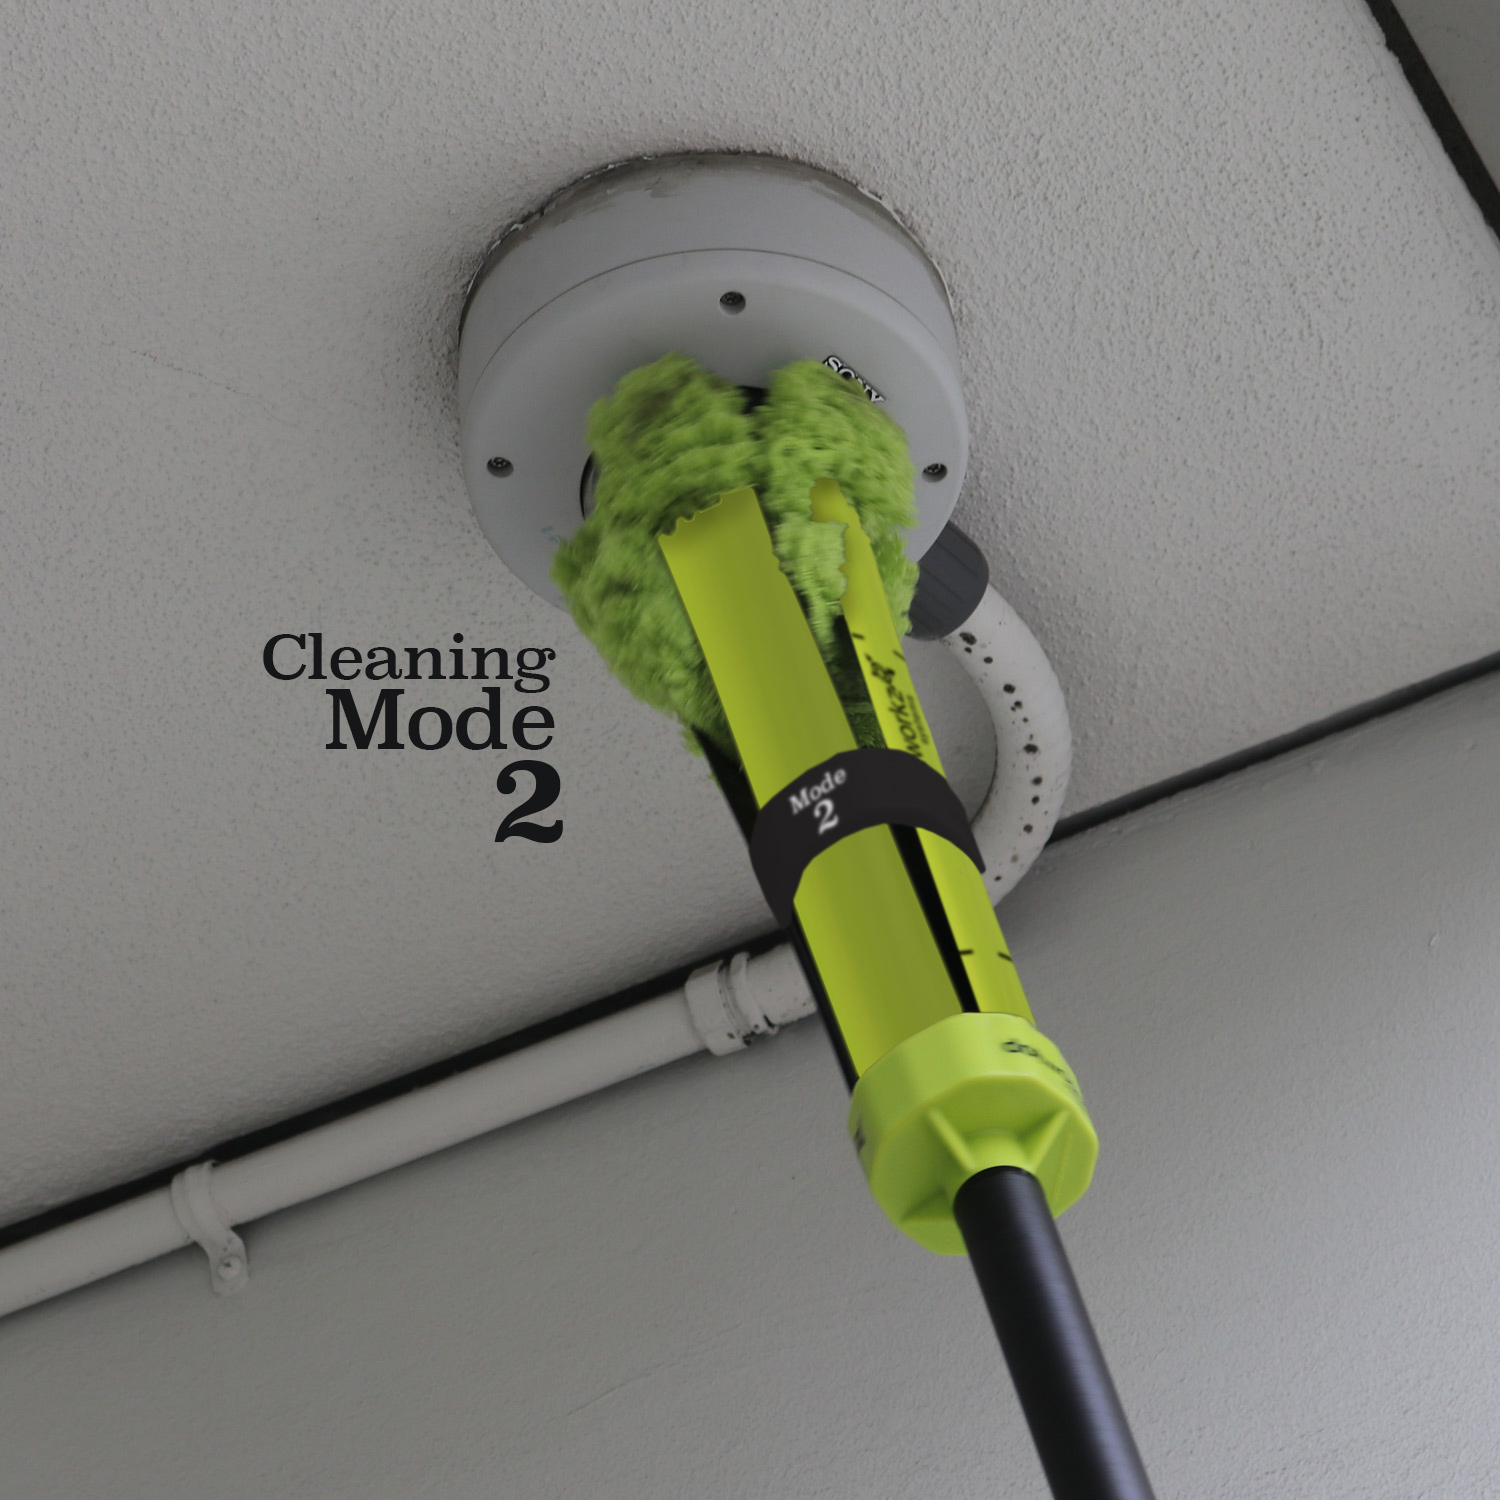 domewizard 2020 elevated multi mode cleaning system action shots from dotworkz cleaning mode 2 example 1 chrt